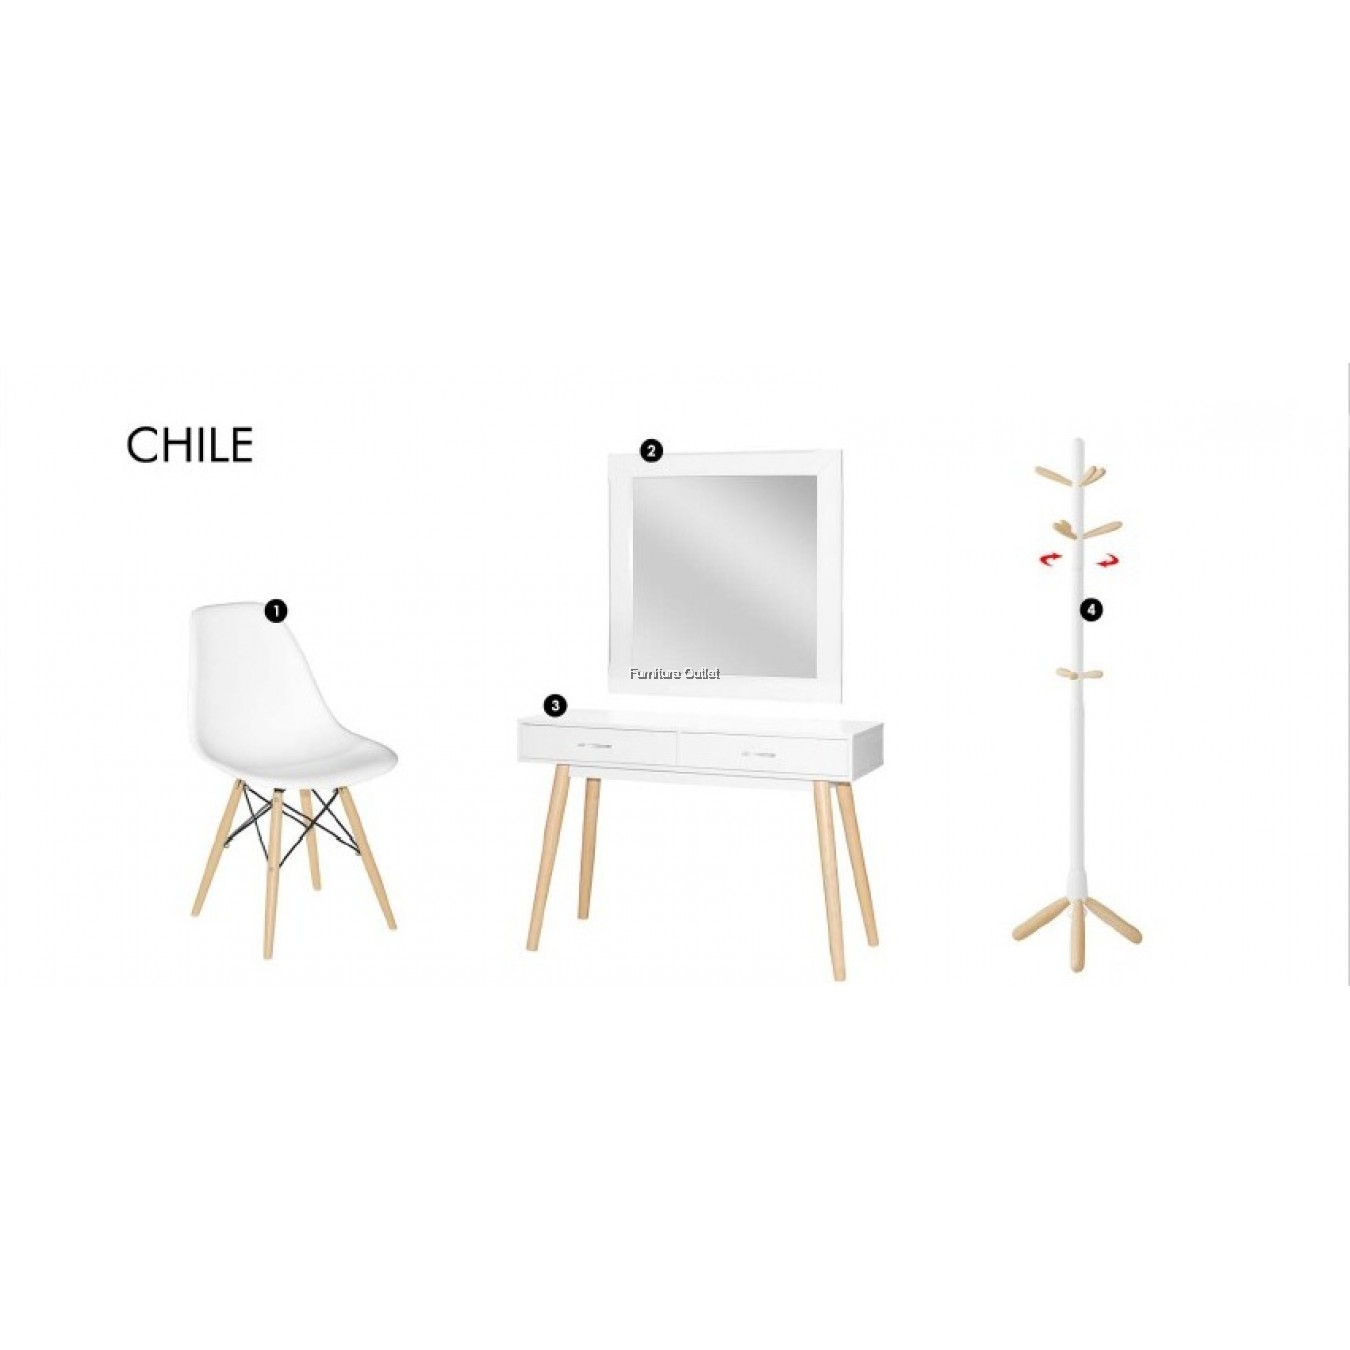 CHILE SET 2 (CONSOLE TABLE + MIRROR + CHAIR + HANGER)